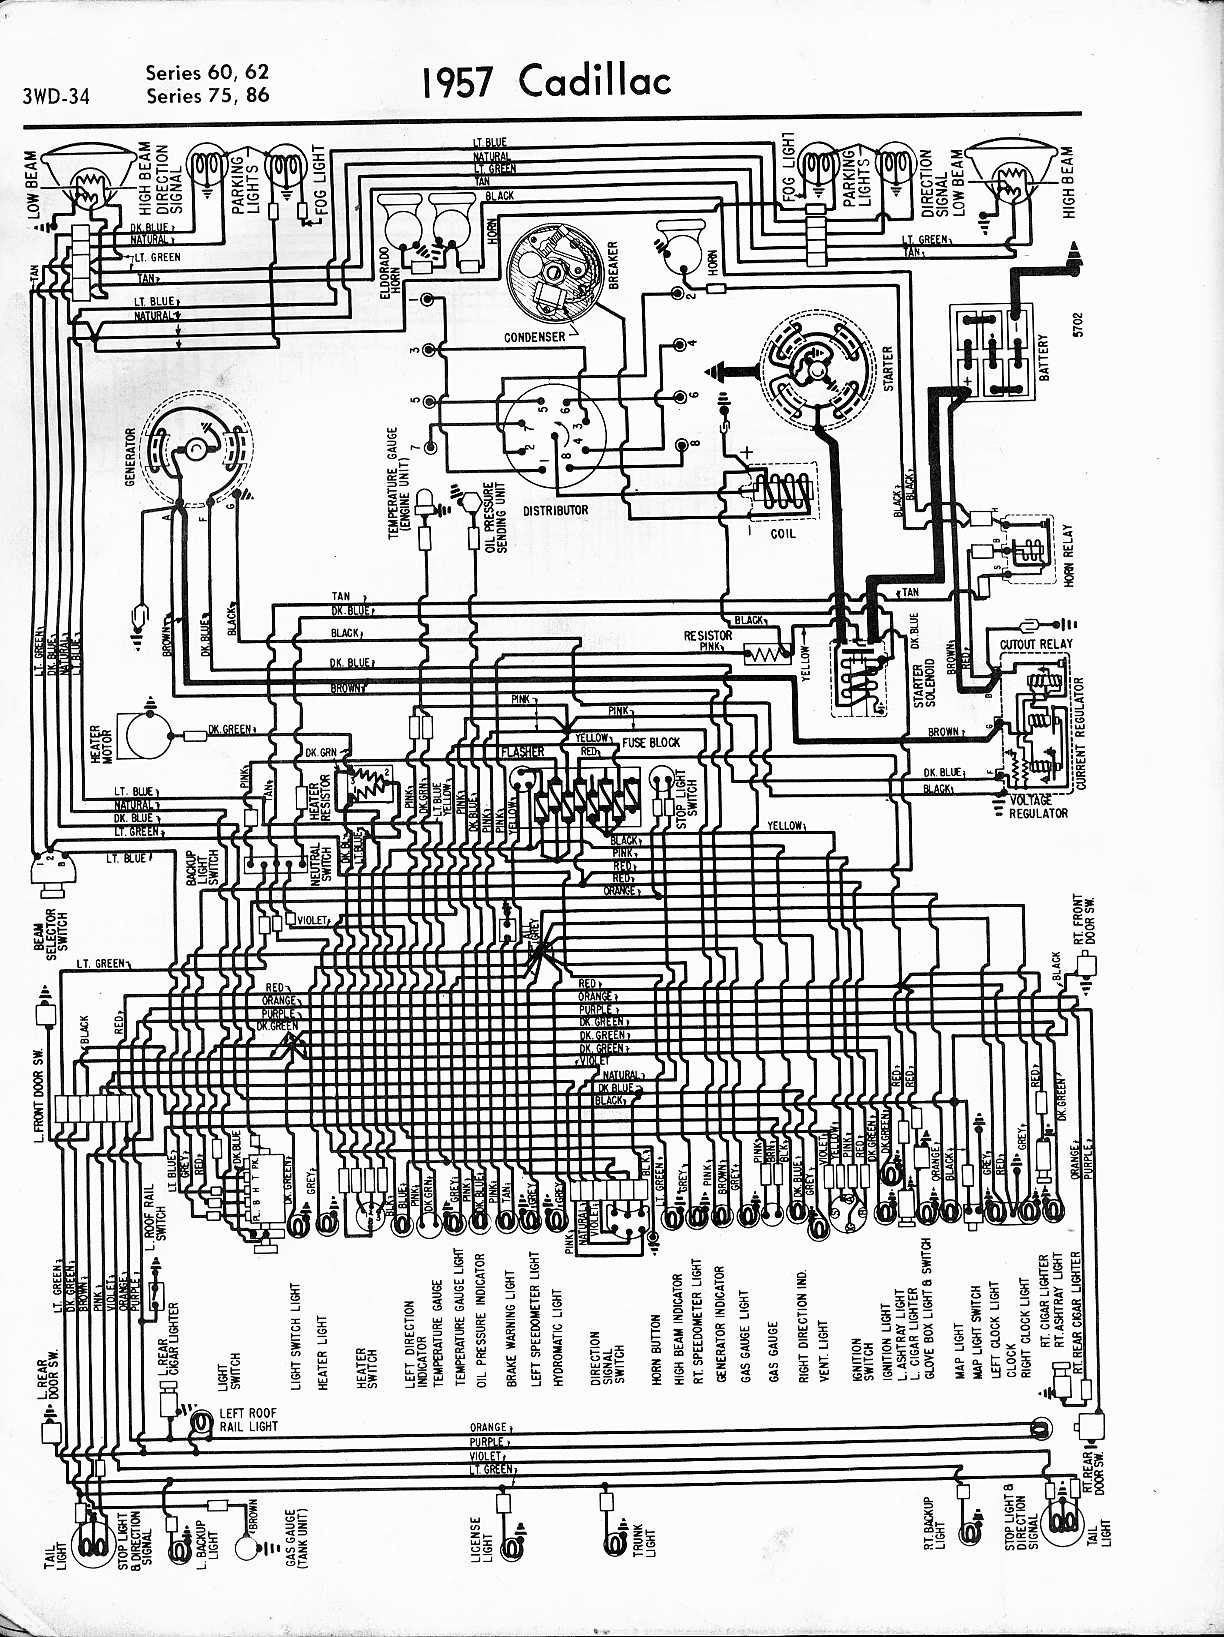 Wiring Diagram Database: 1999 Cadillac Deville Cooling ...